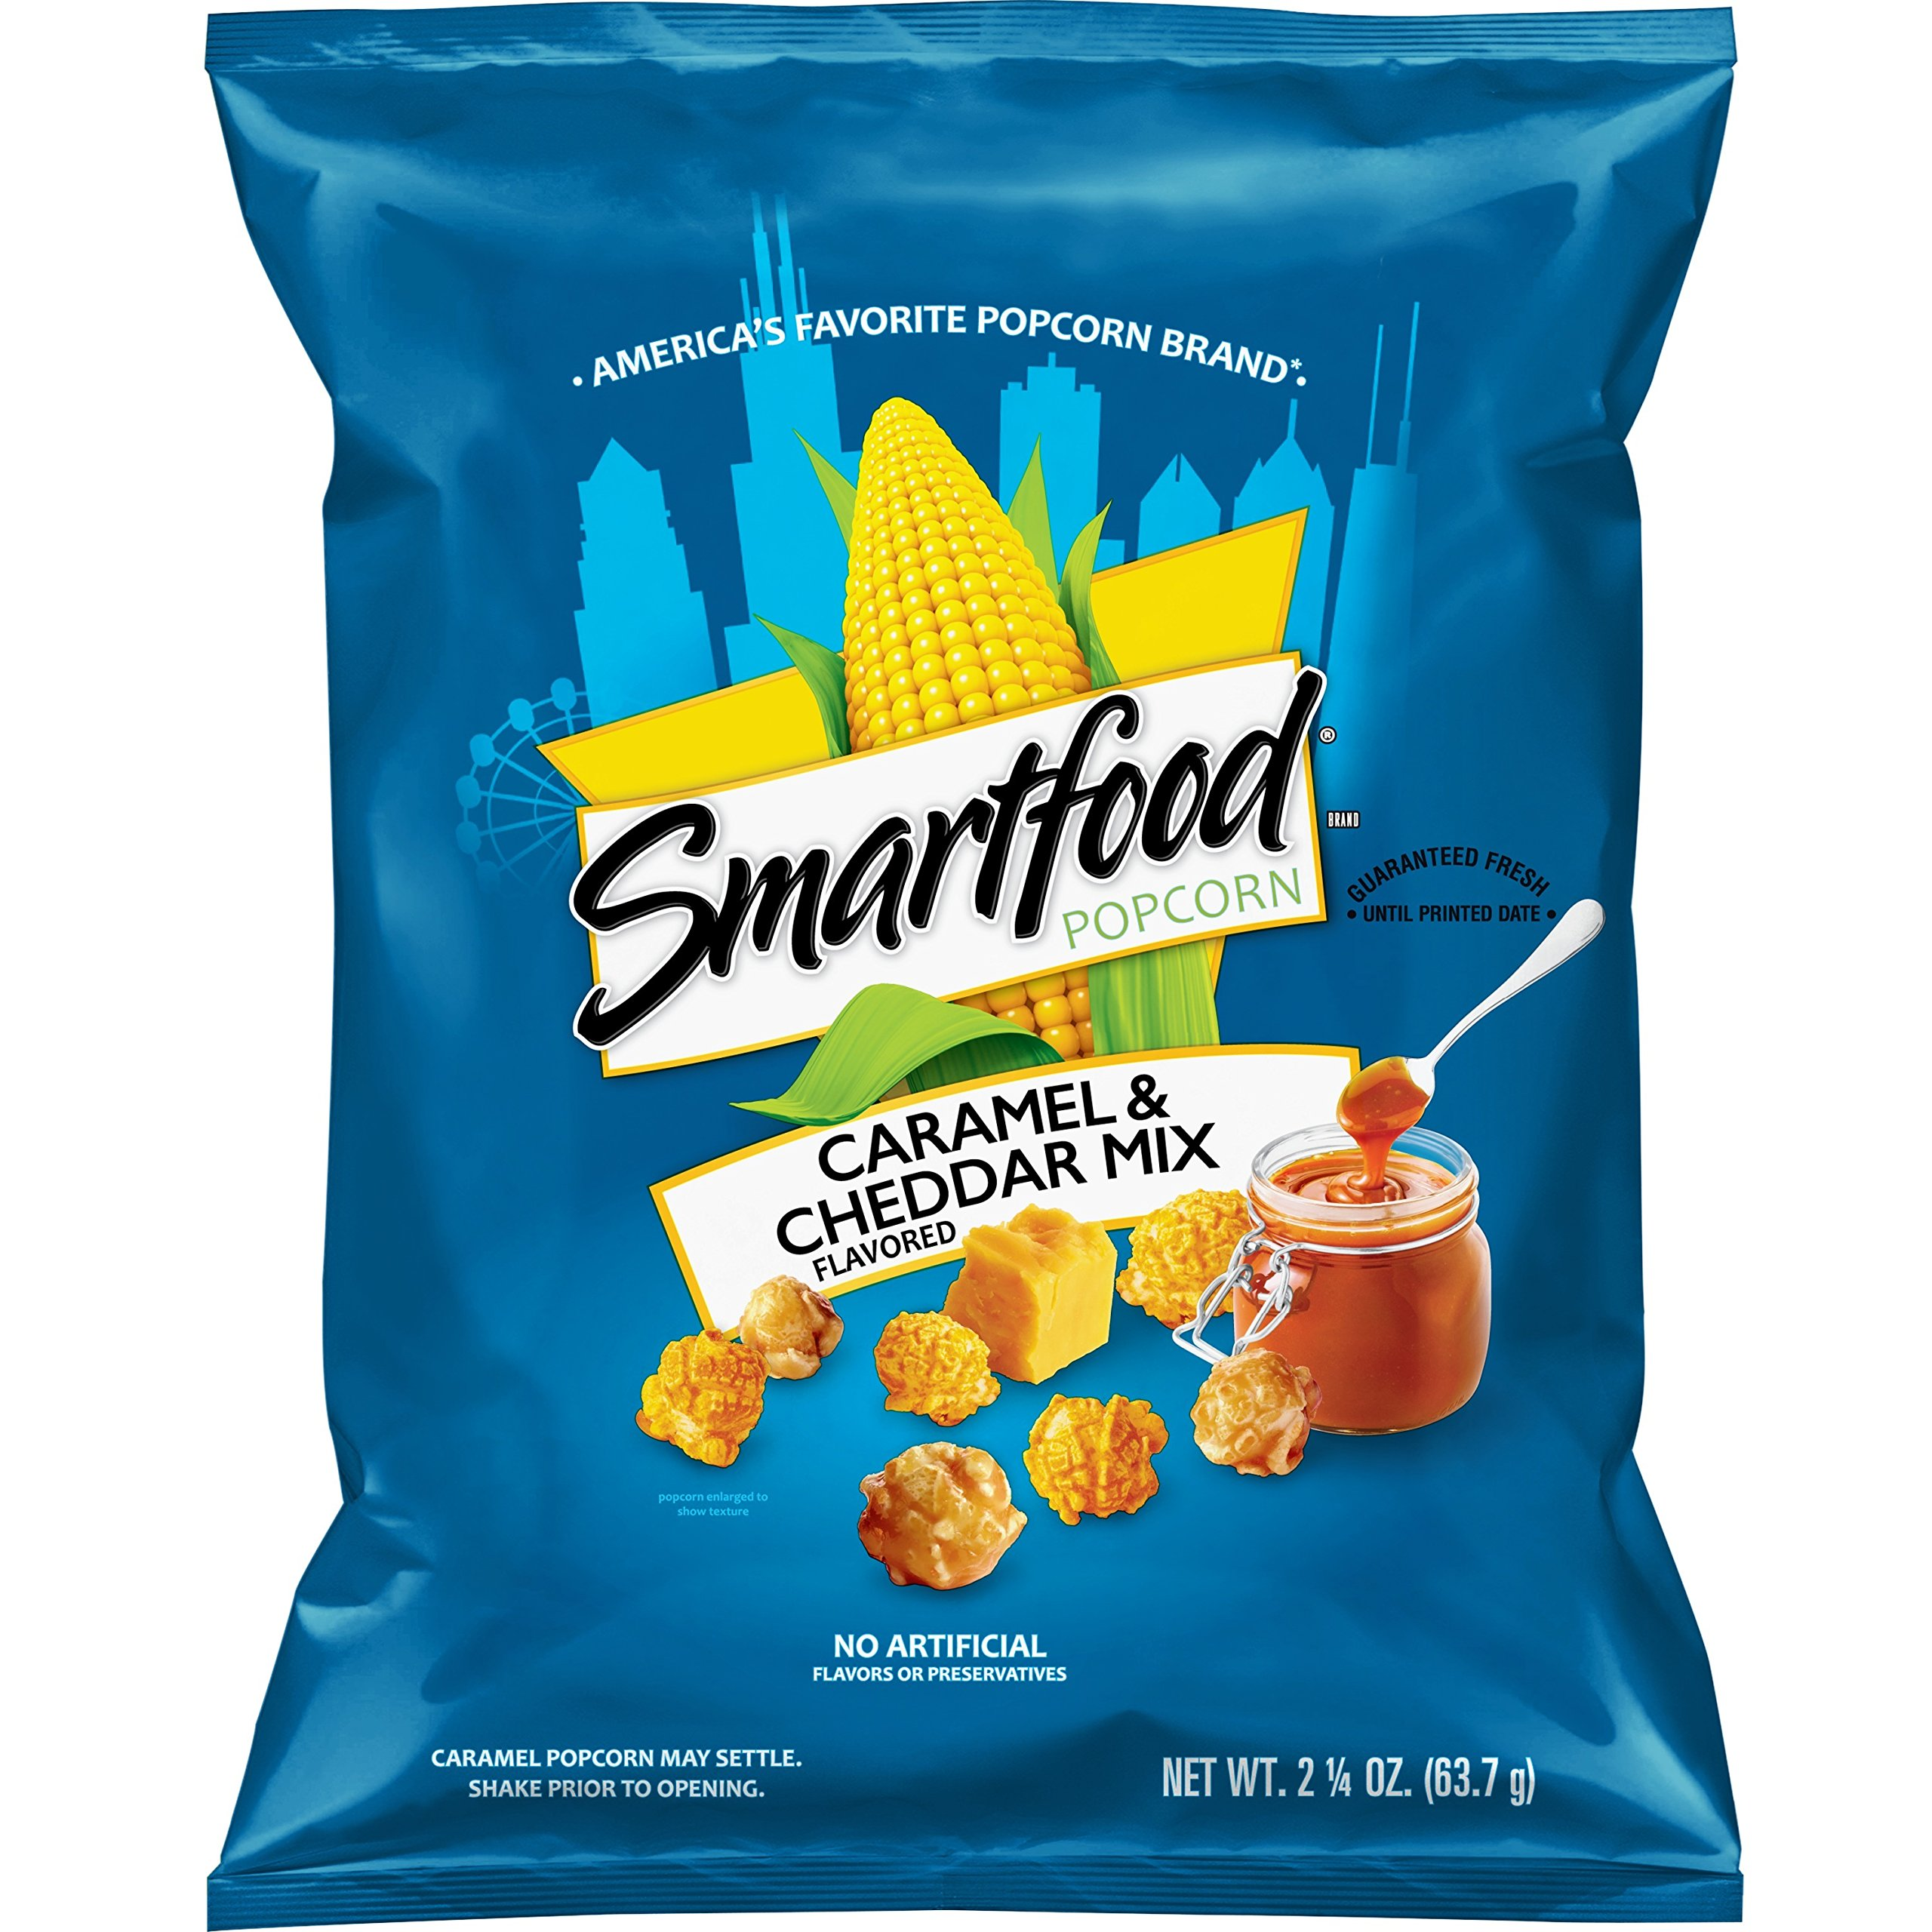 Smartfood Cheddar & Caramel Mix Popcorn, 2.25 Ounce Bags (Pack of 8) by Smartfood